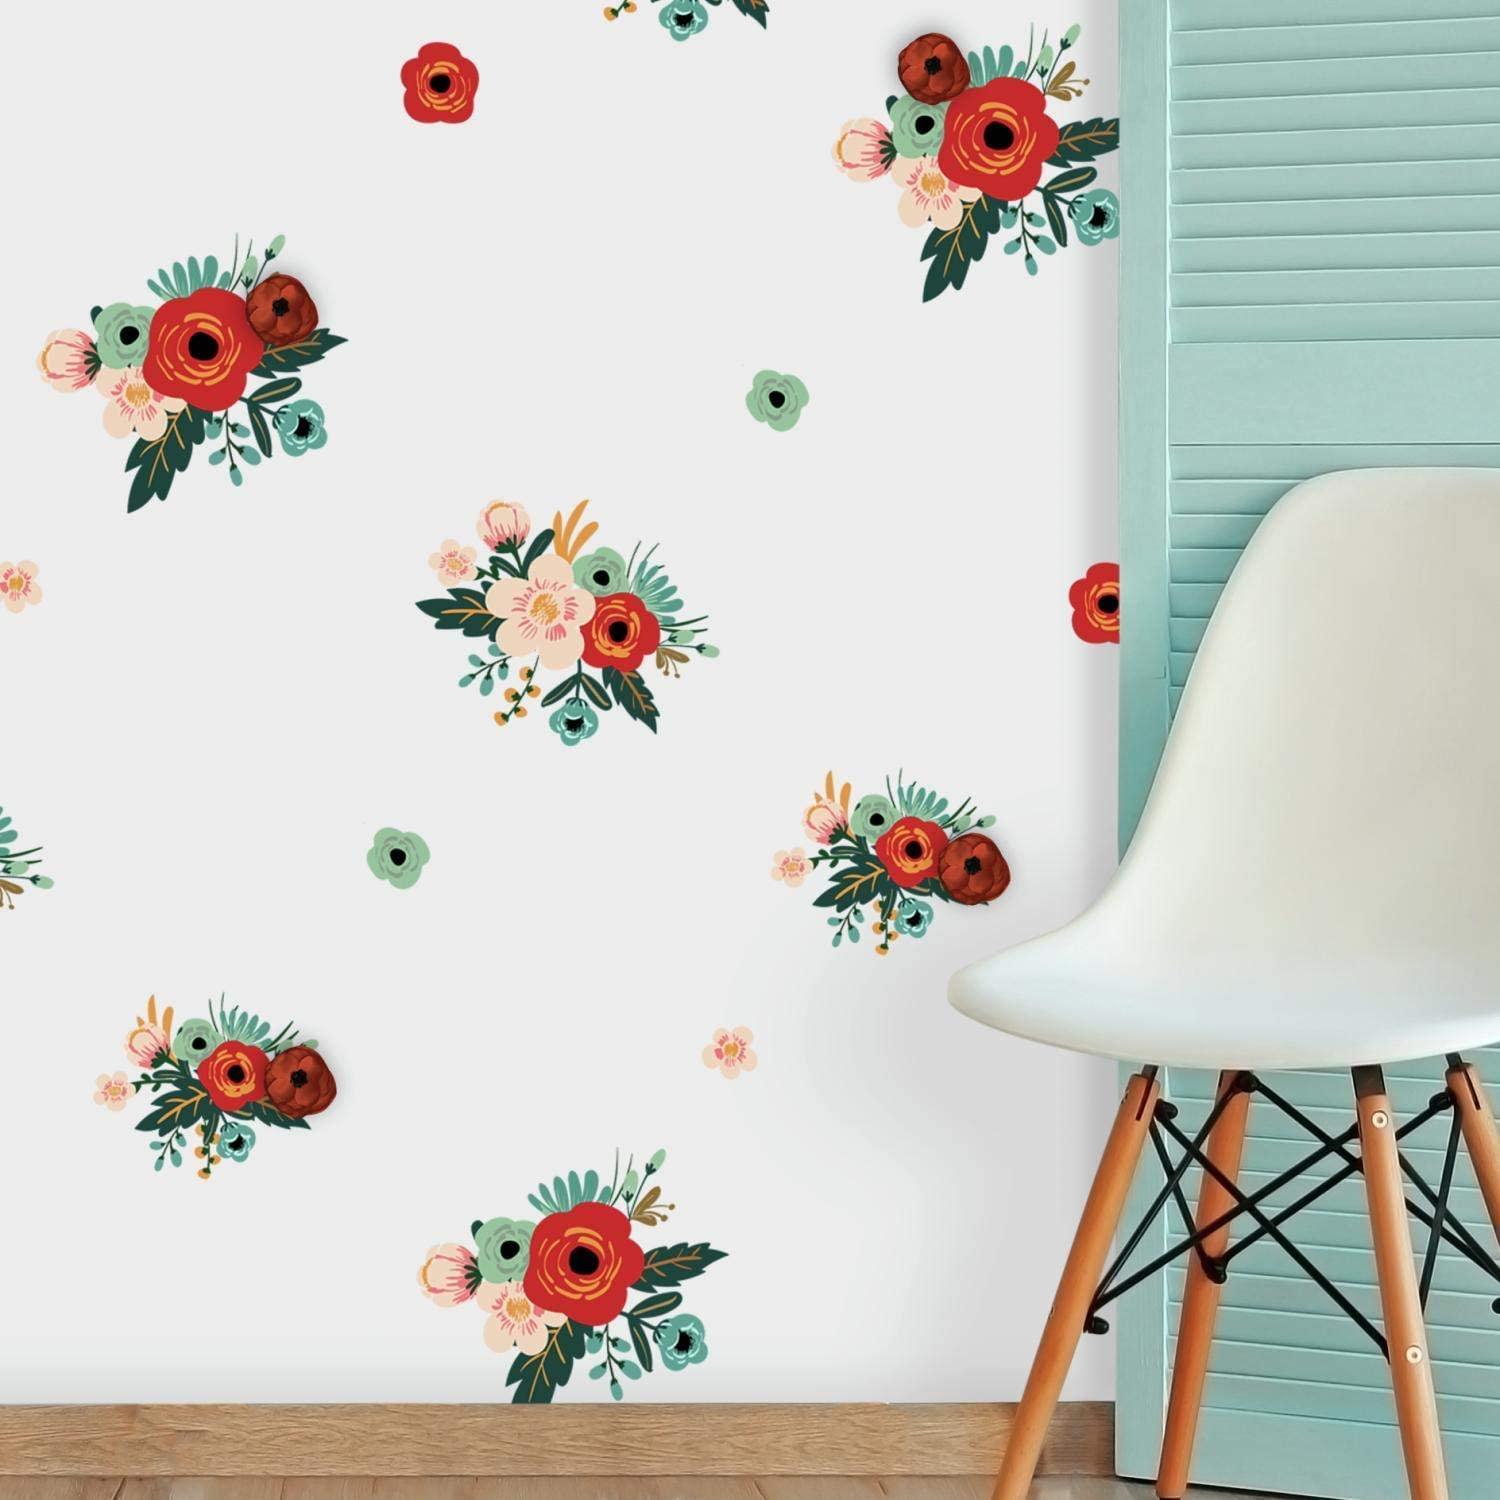 RoomMates Mini Floral Peel And Stick Wall Decals with 3D Embellishments